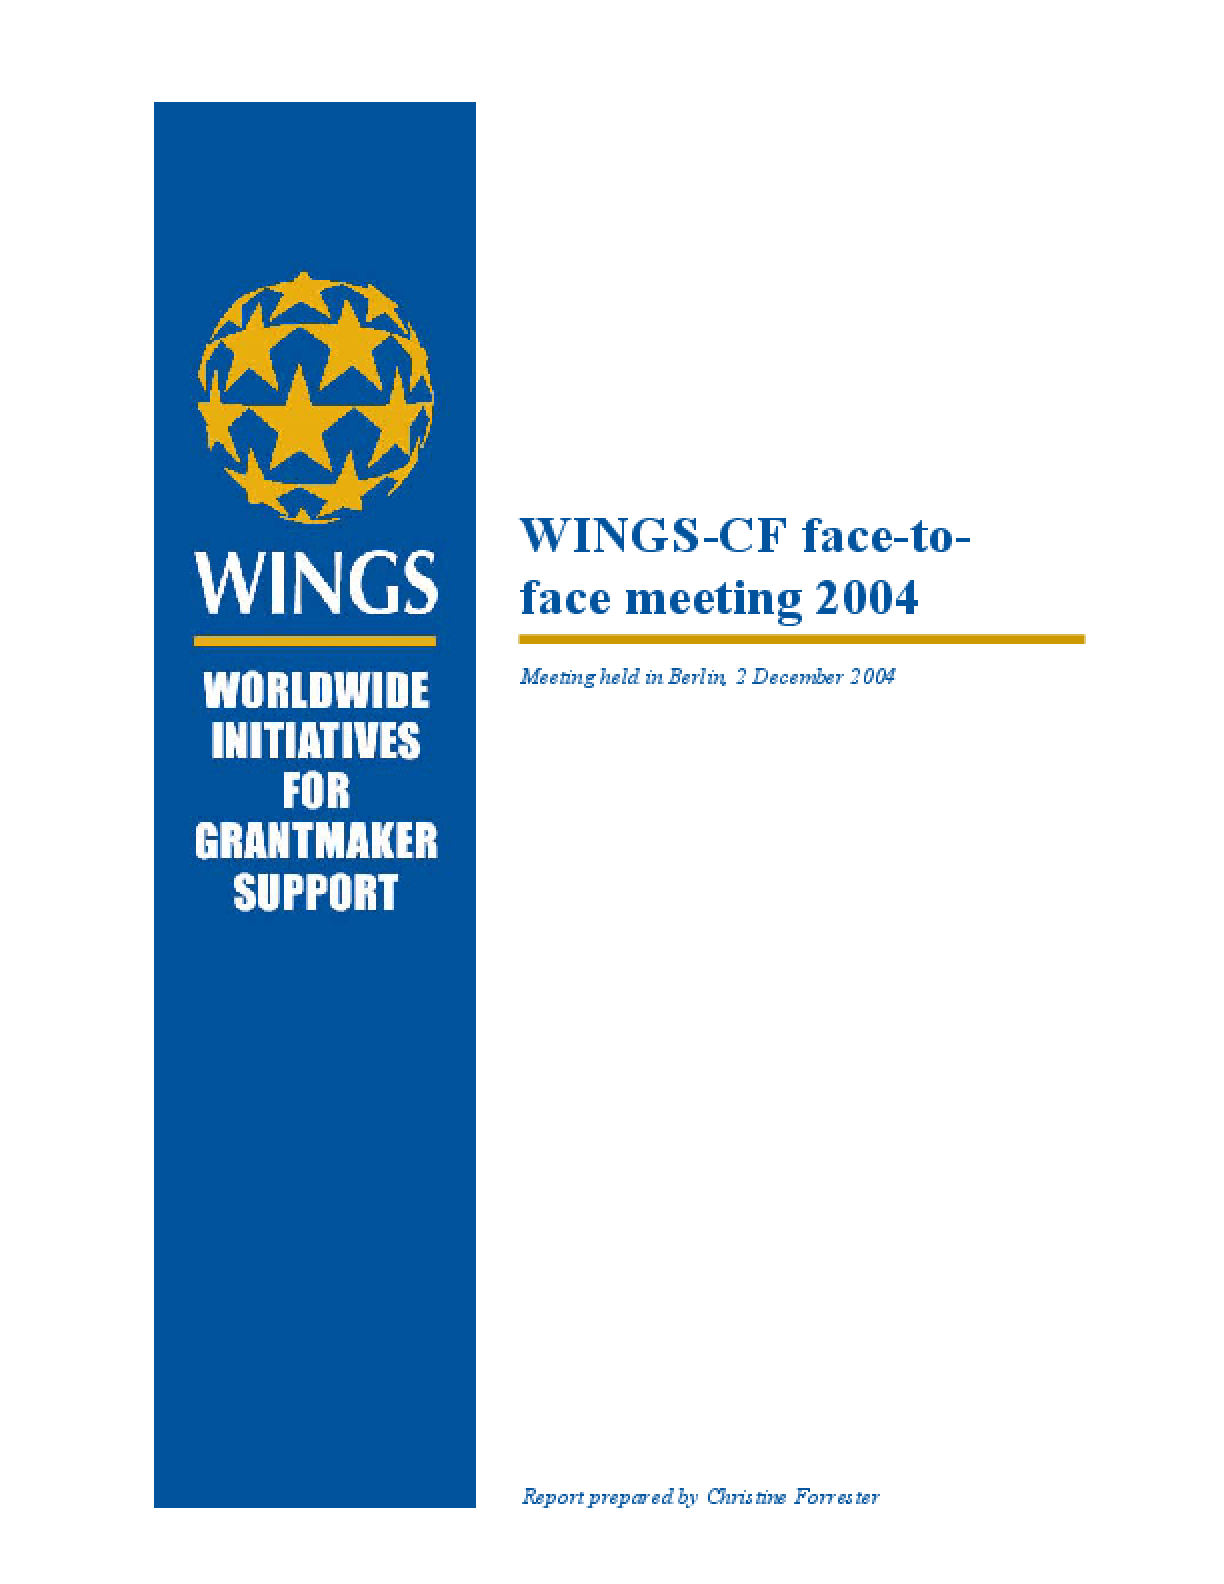 WINGS-CF Face-to-Face Meeting 2004